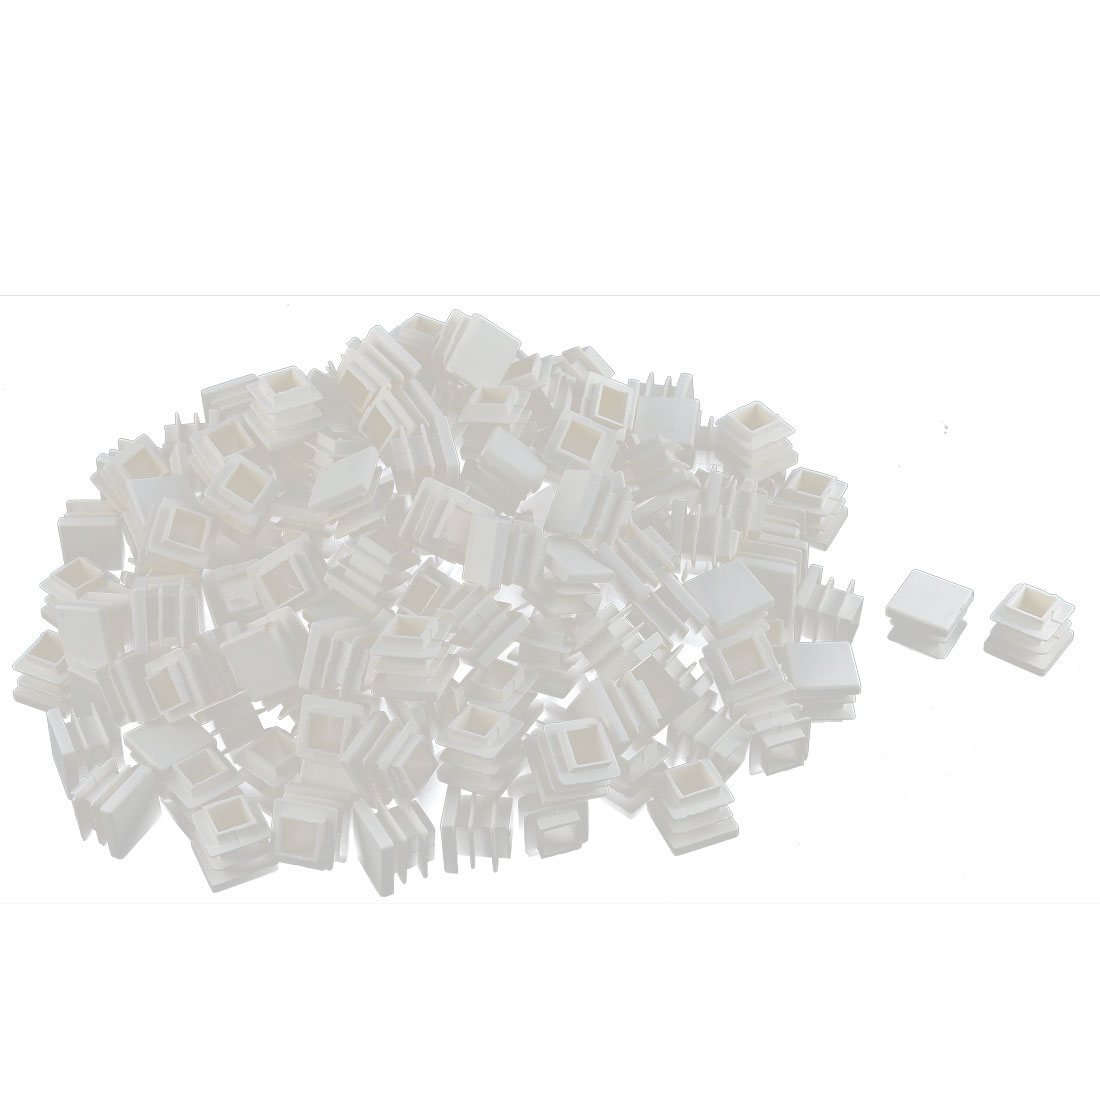 Furniture Desk Chair Legs Plastic Square Tube Pipe Insert Cover End Caps White 16 x 16mm 200pcs